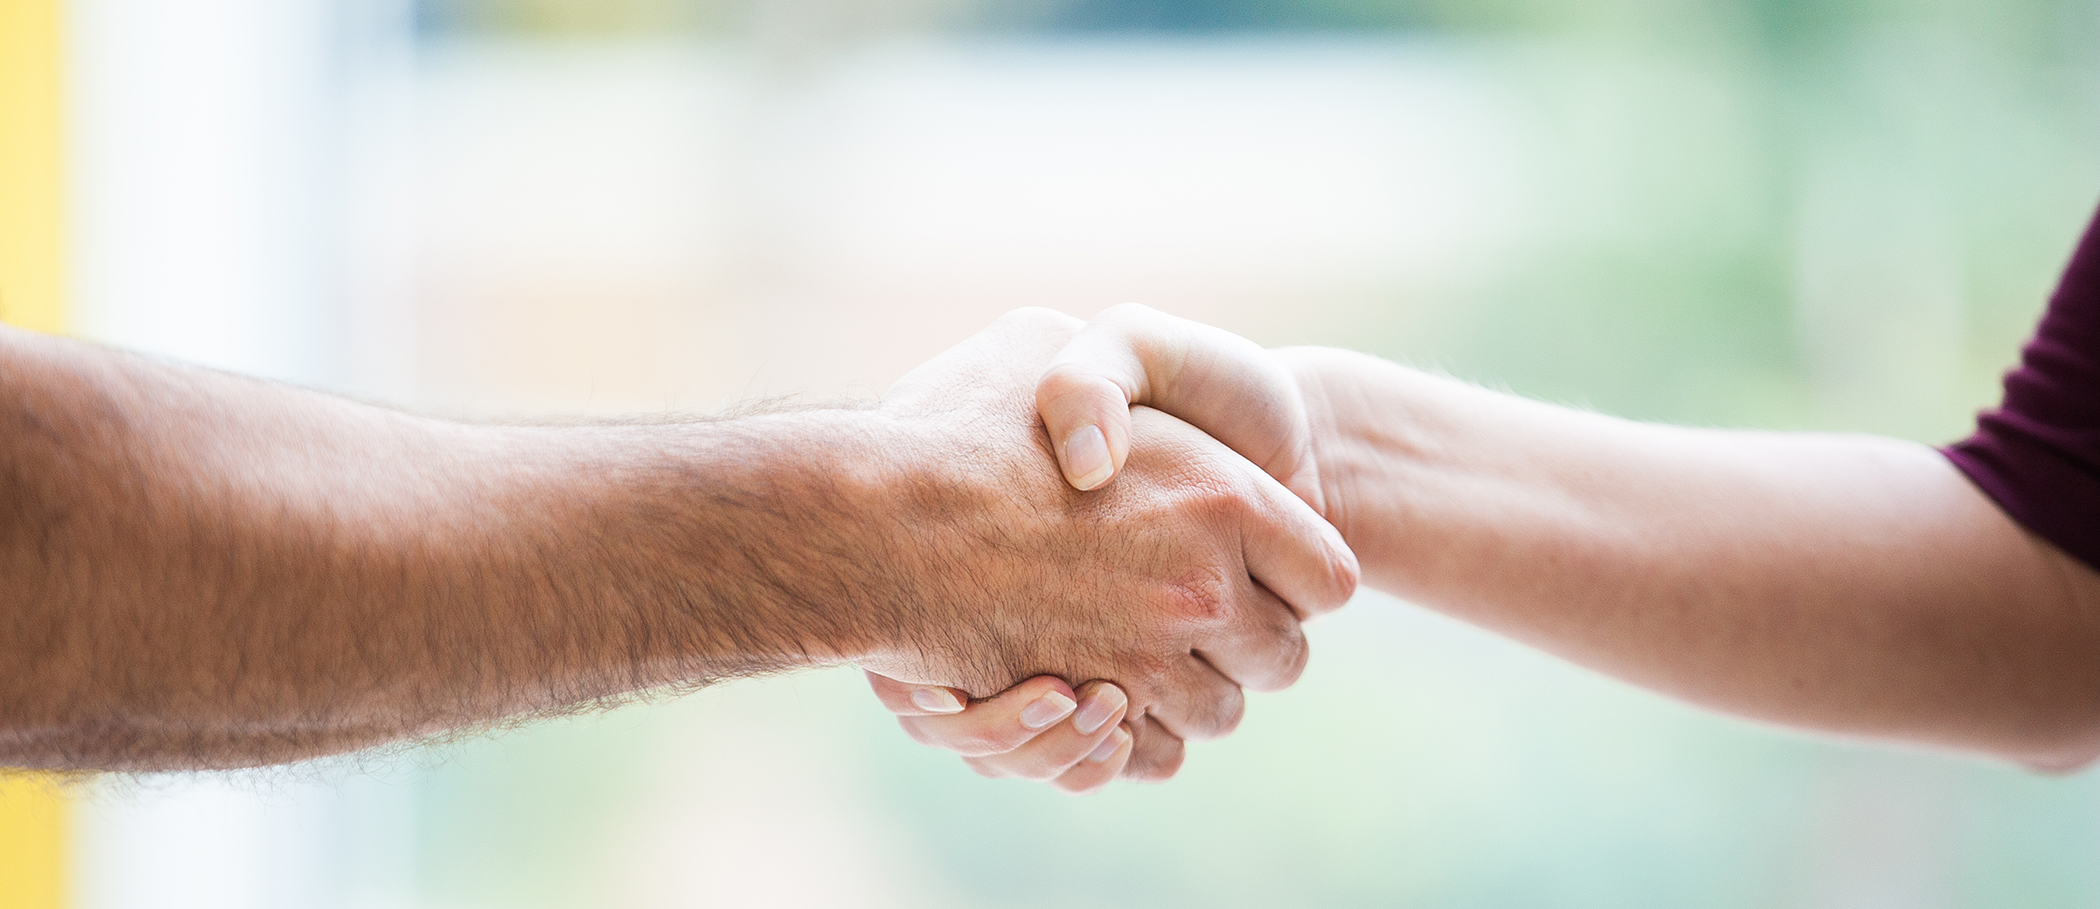 A handshake, a bond of trust and respect